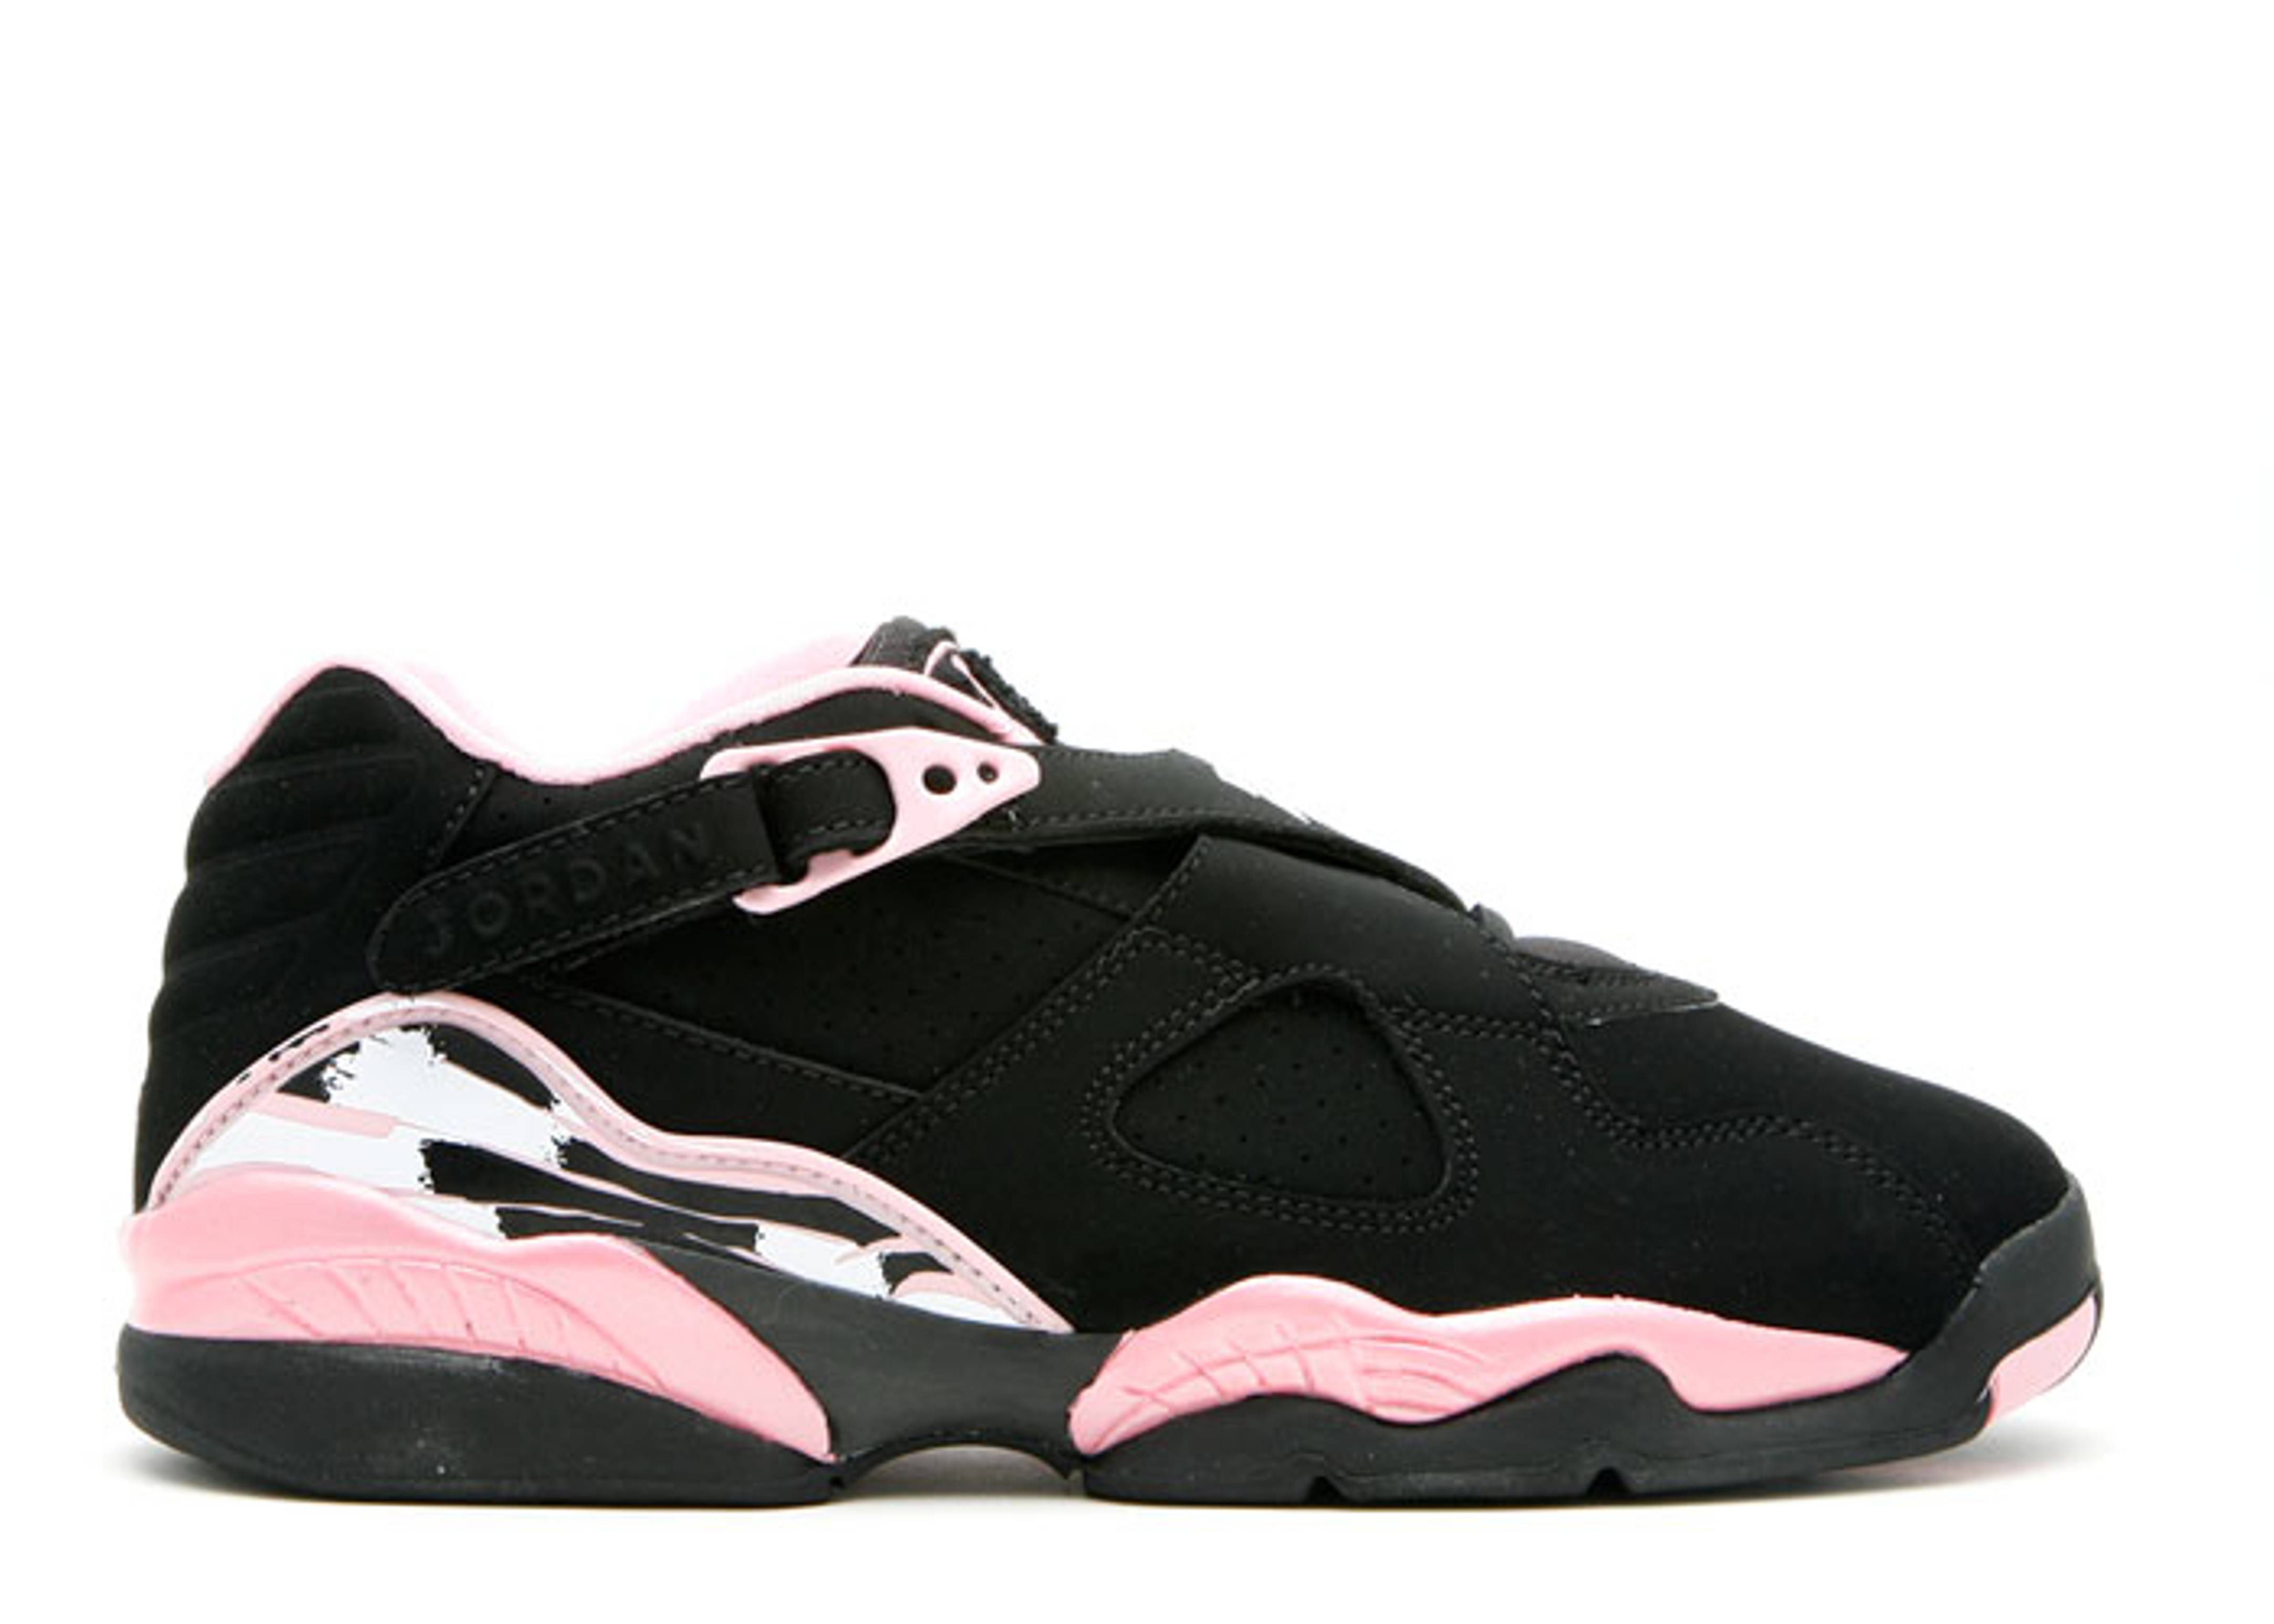 jordan 8 retro low (gs)